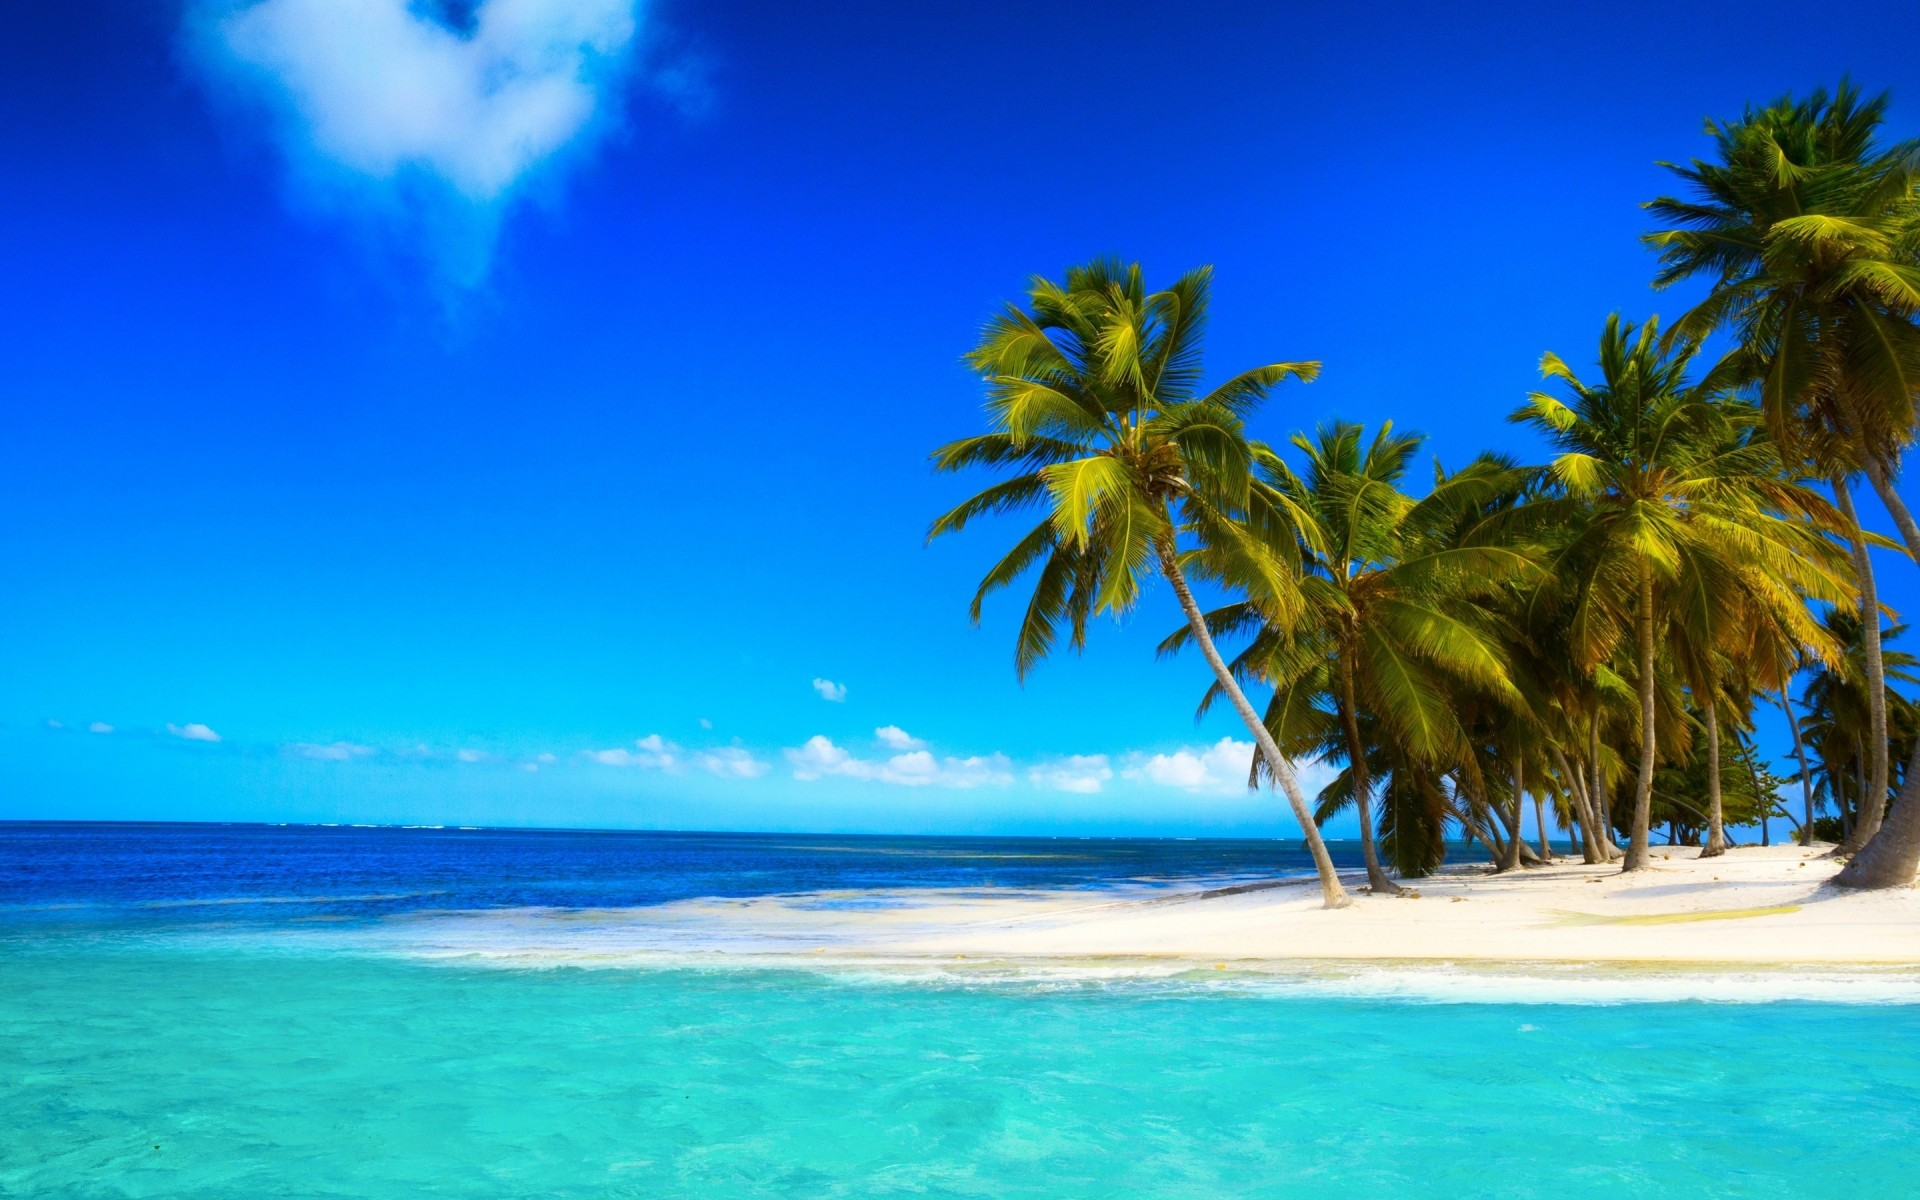 landscapes tropical sand idyllic beach island seashore travel water exotic turquoise seascape summer vacation ocean relaxation paradise palm sun resort palms landscape sky